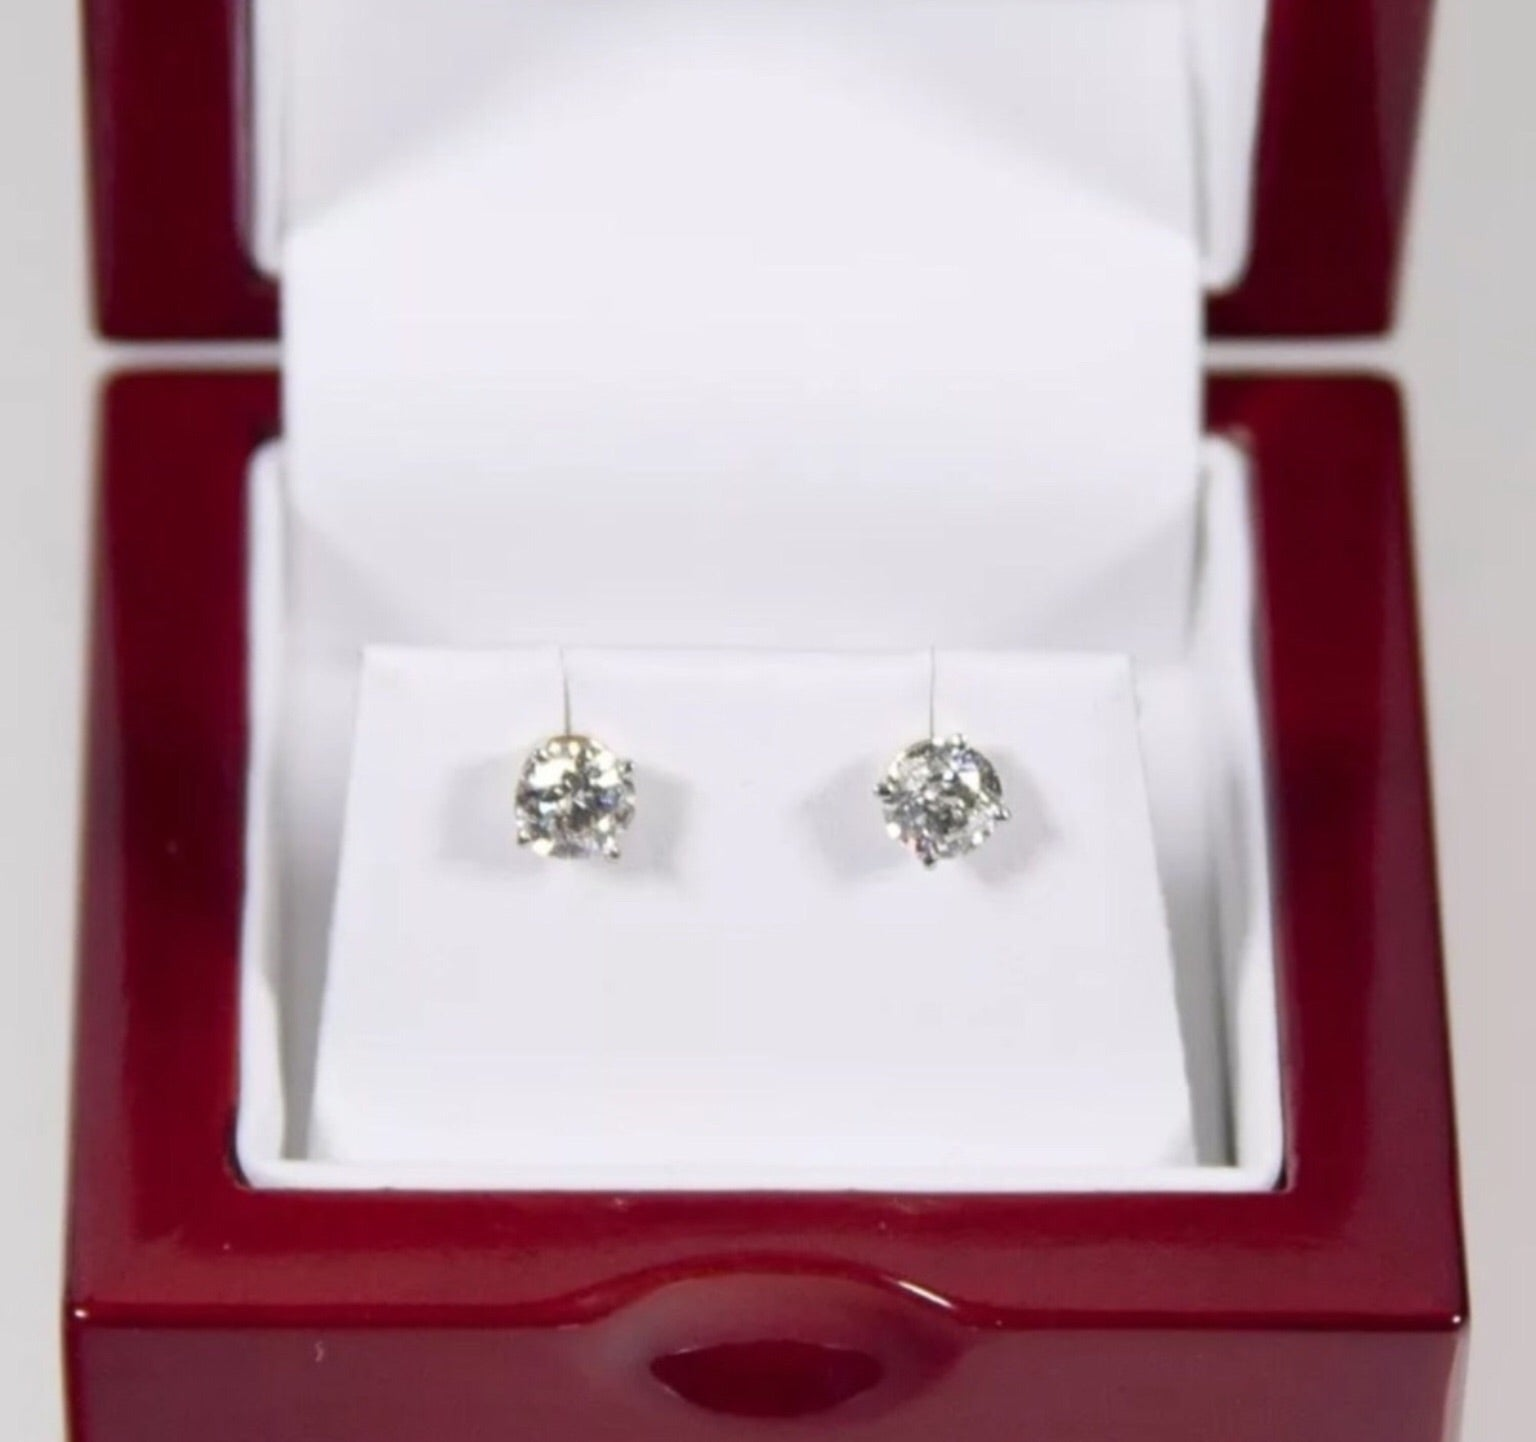 fbe77c15d 1.00 CT Natural Diamond Solid 14K Yellow Gold Stud Earrings